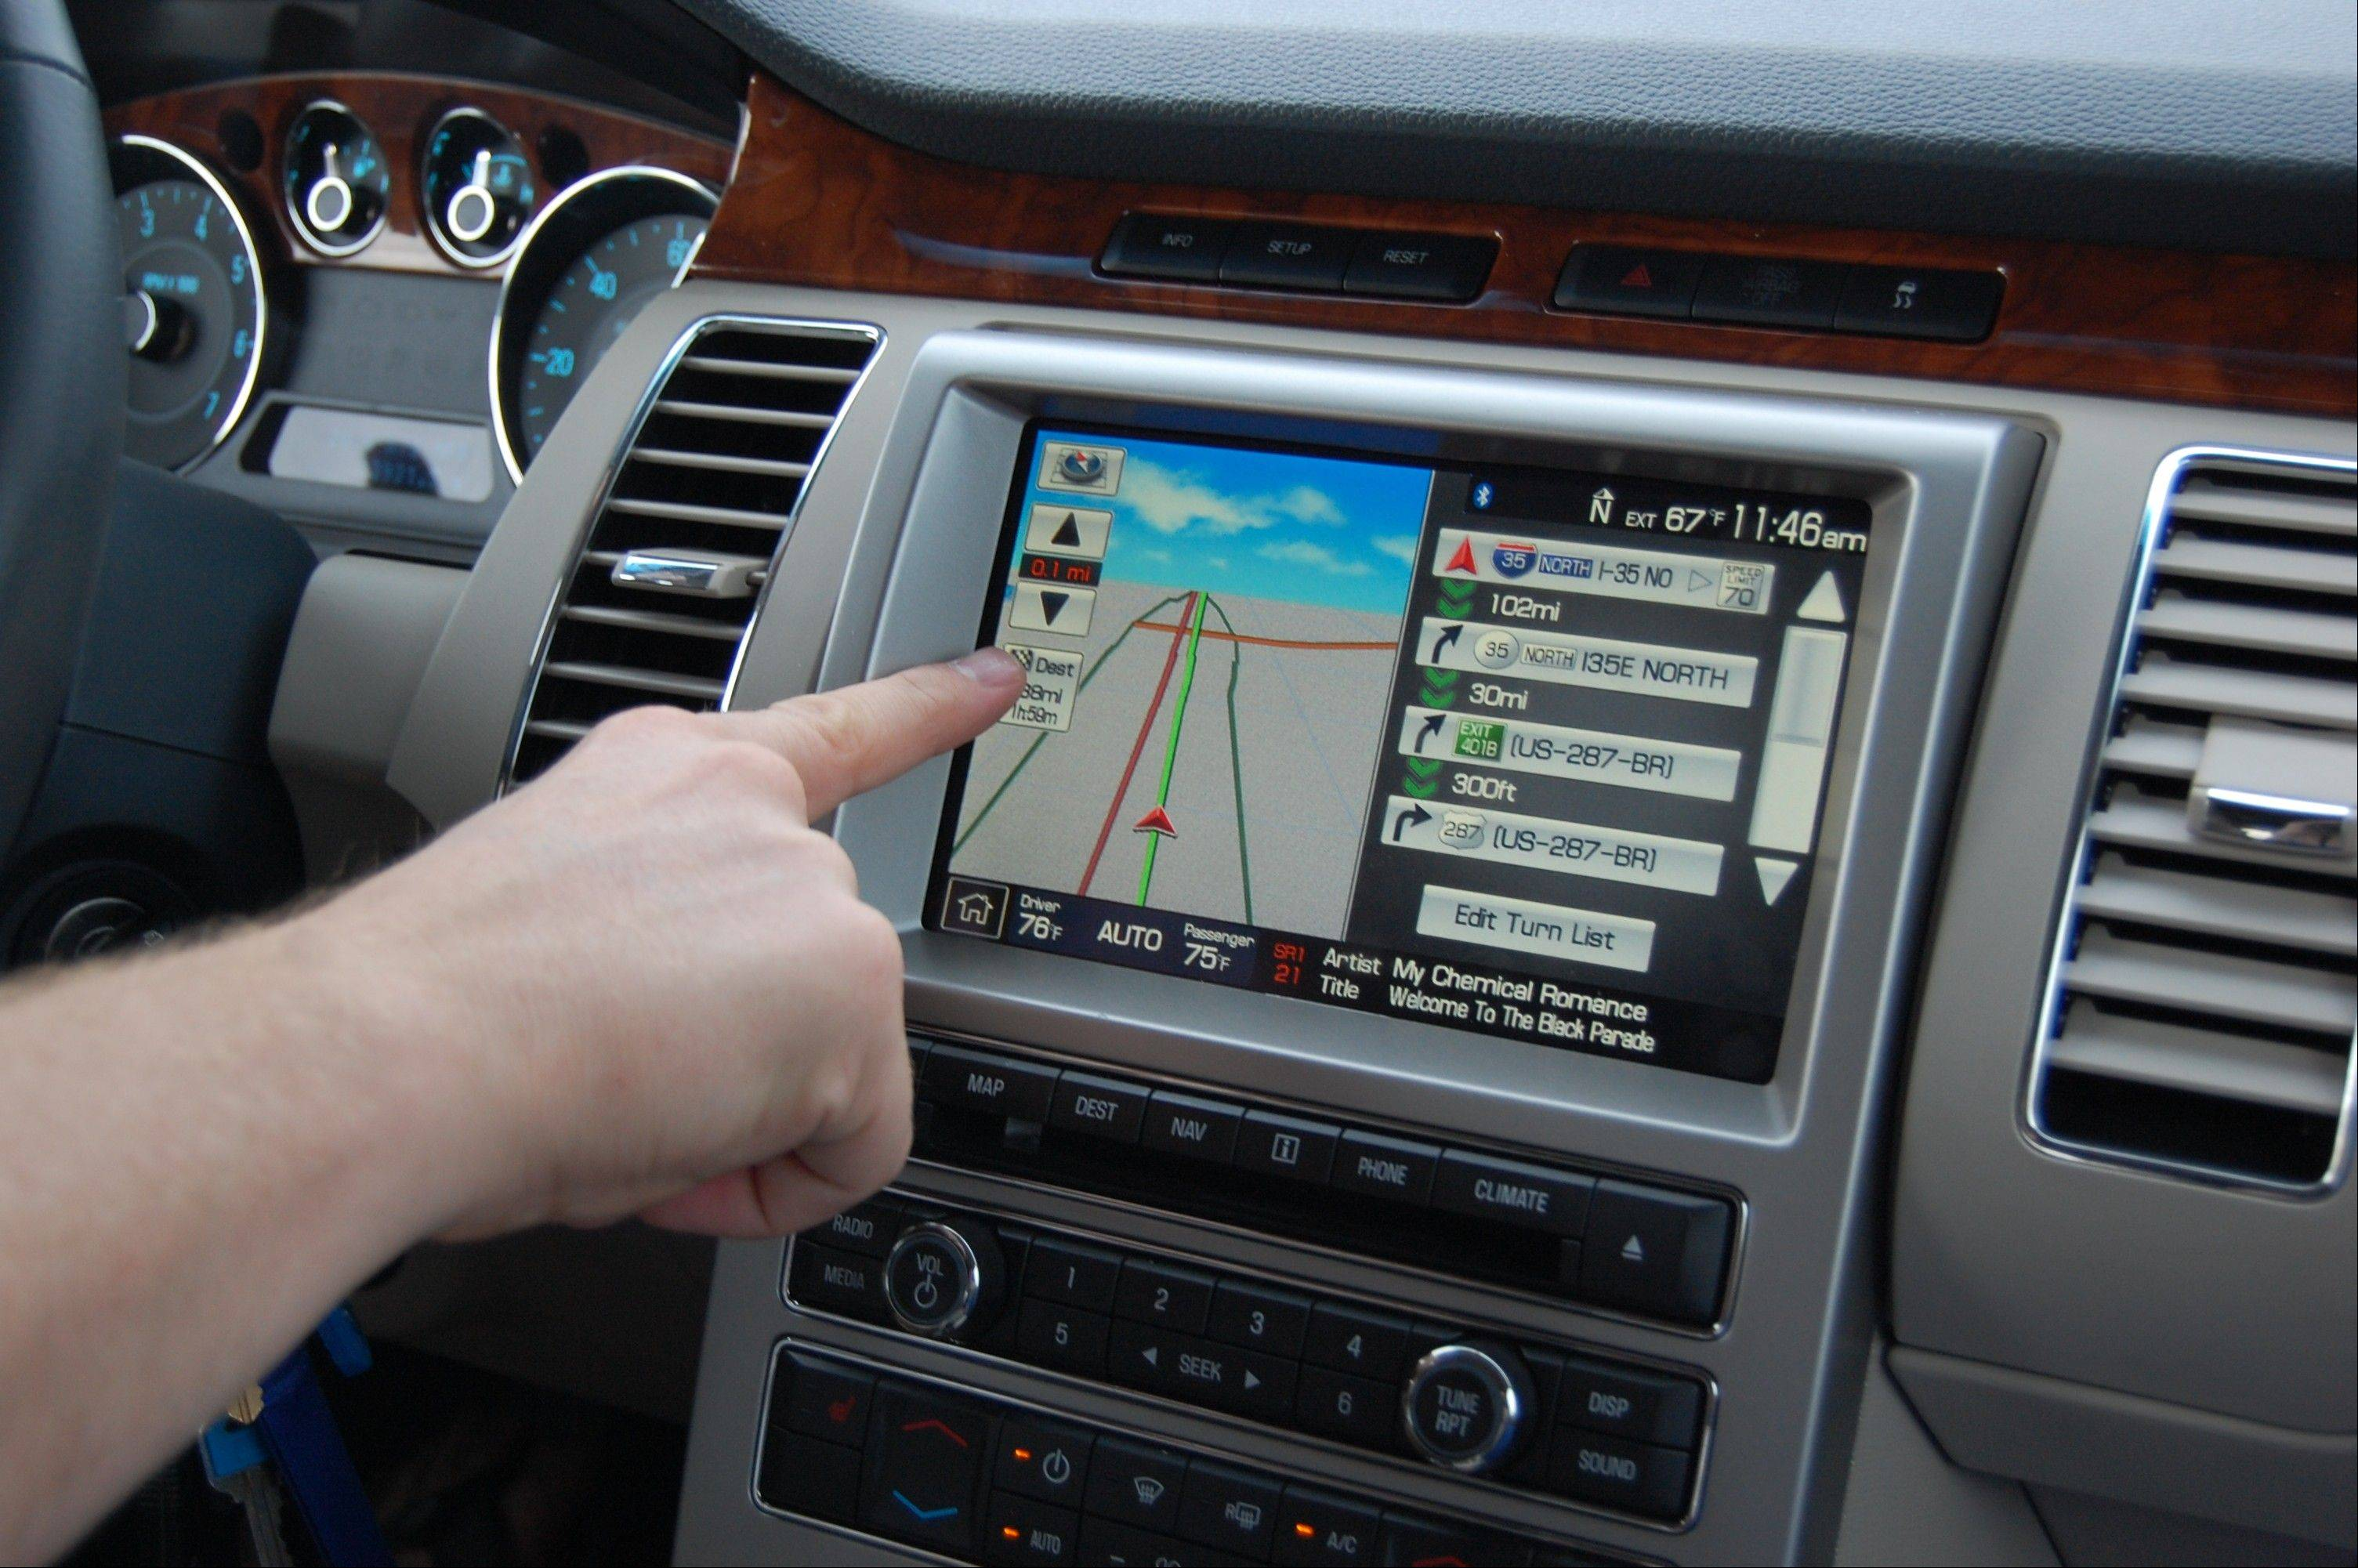 U.S. traffic safety regulators are expected to propose stronger measures to keep drivers from being distracted by in-car touchscreens.